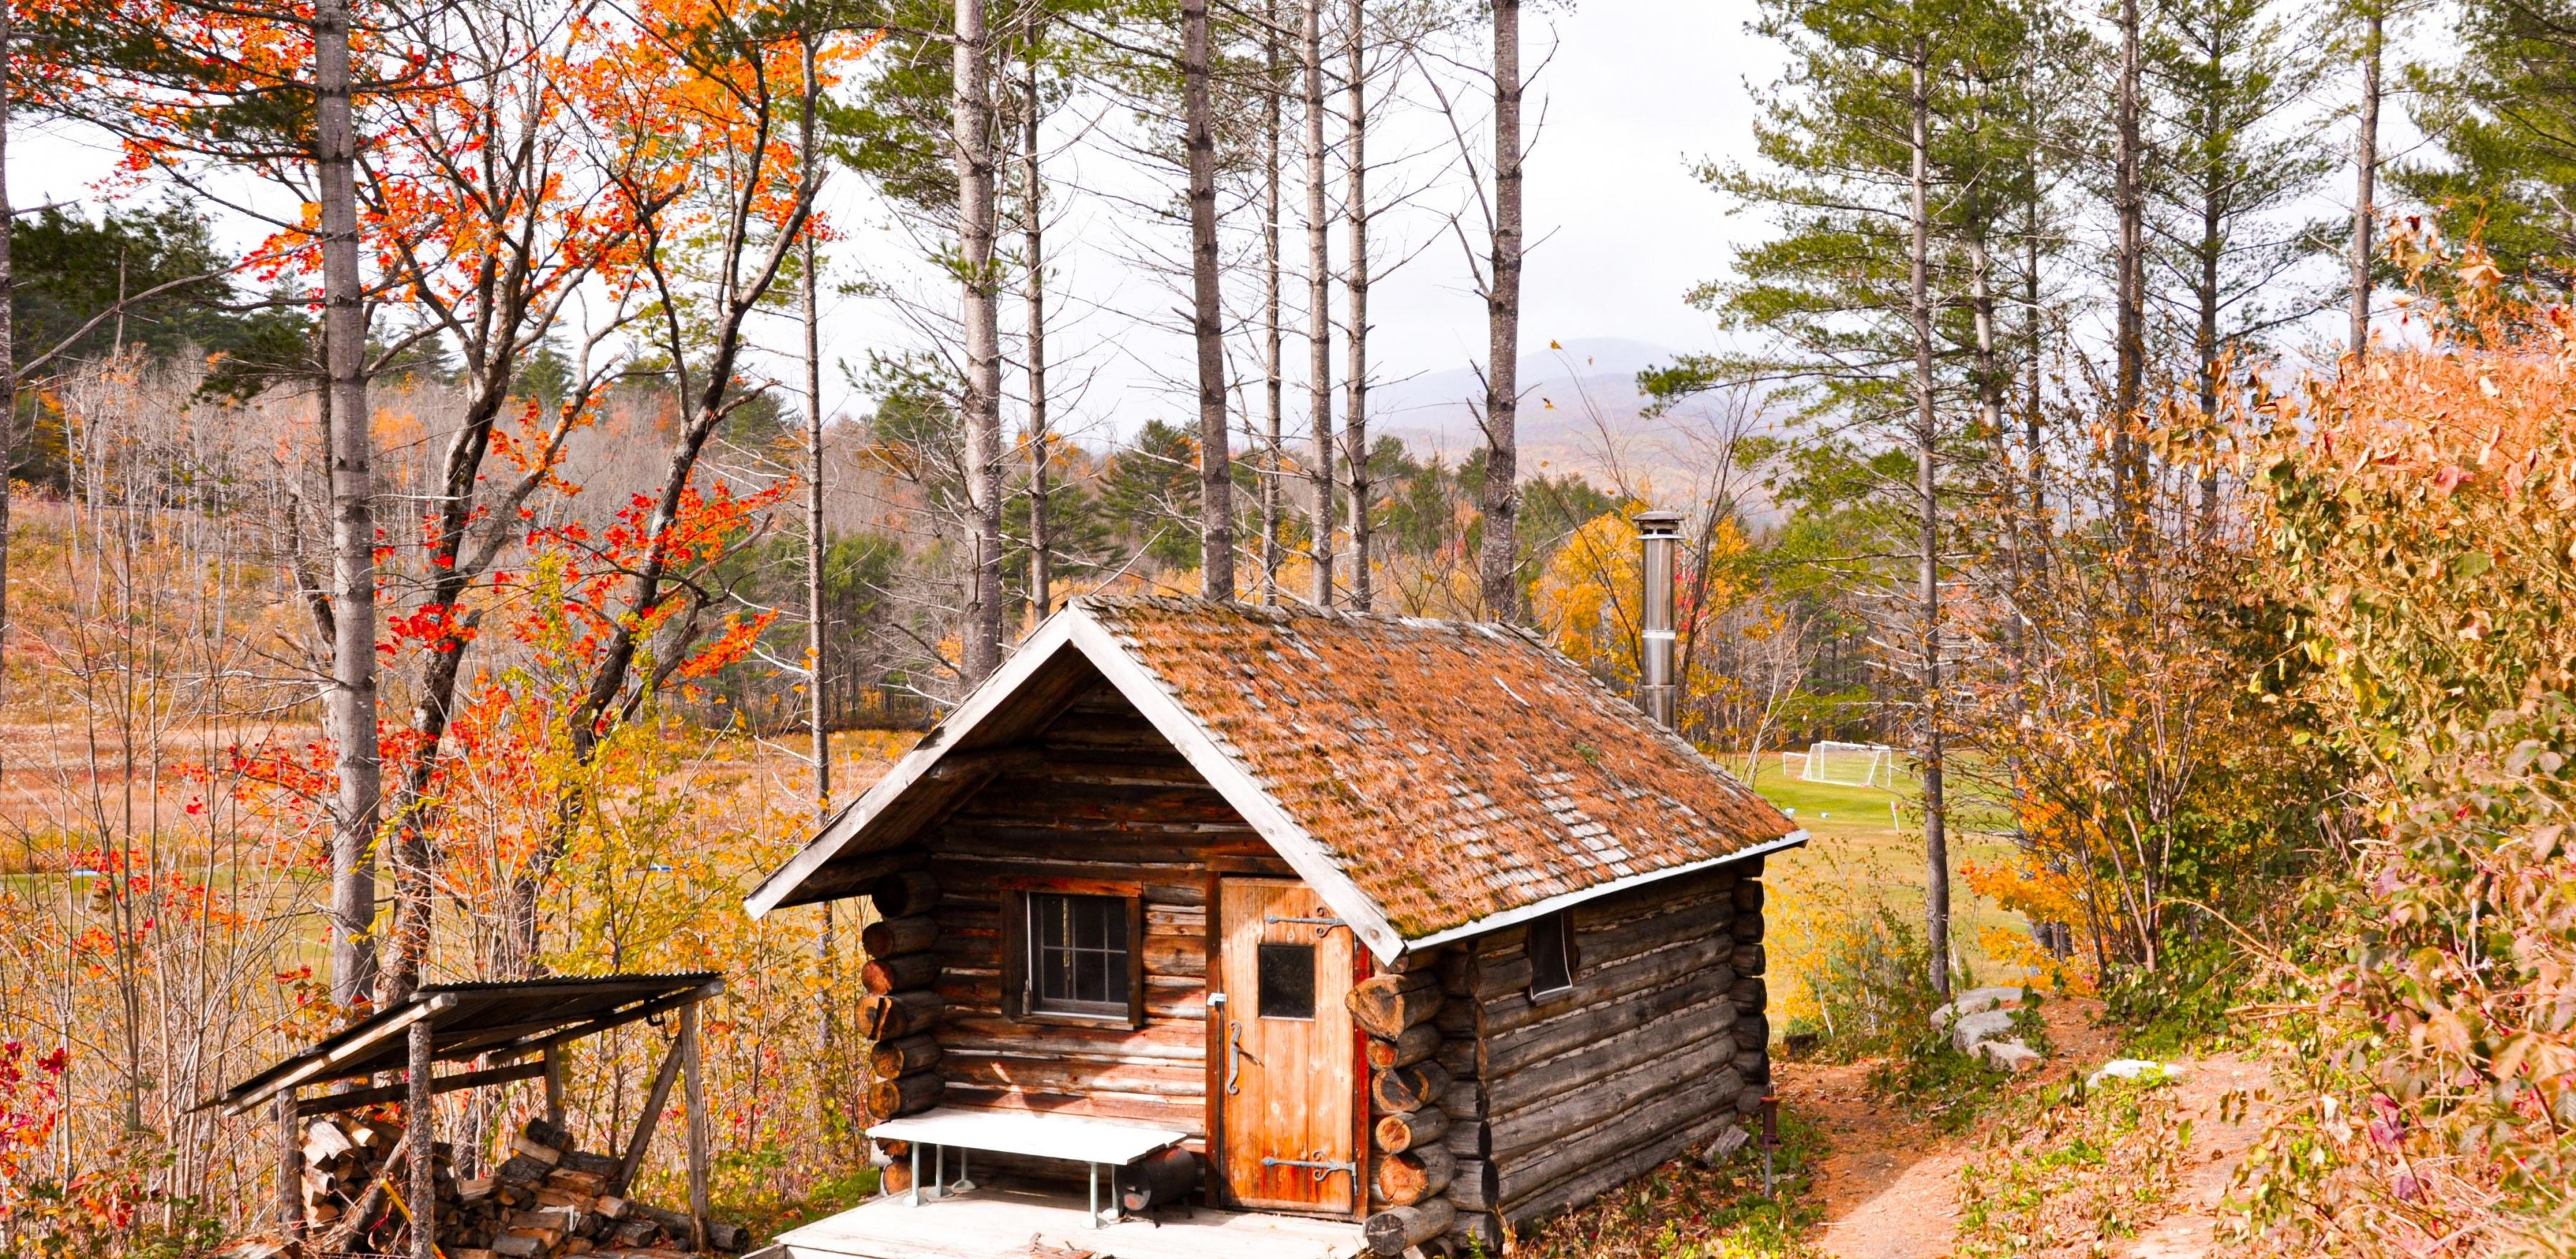 log cabin in forest during autumn